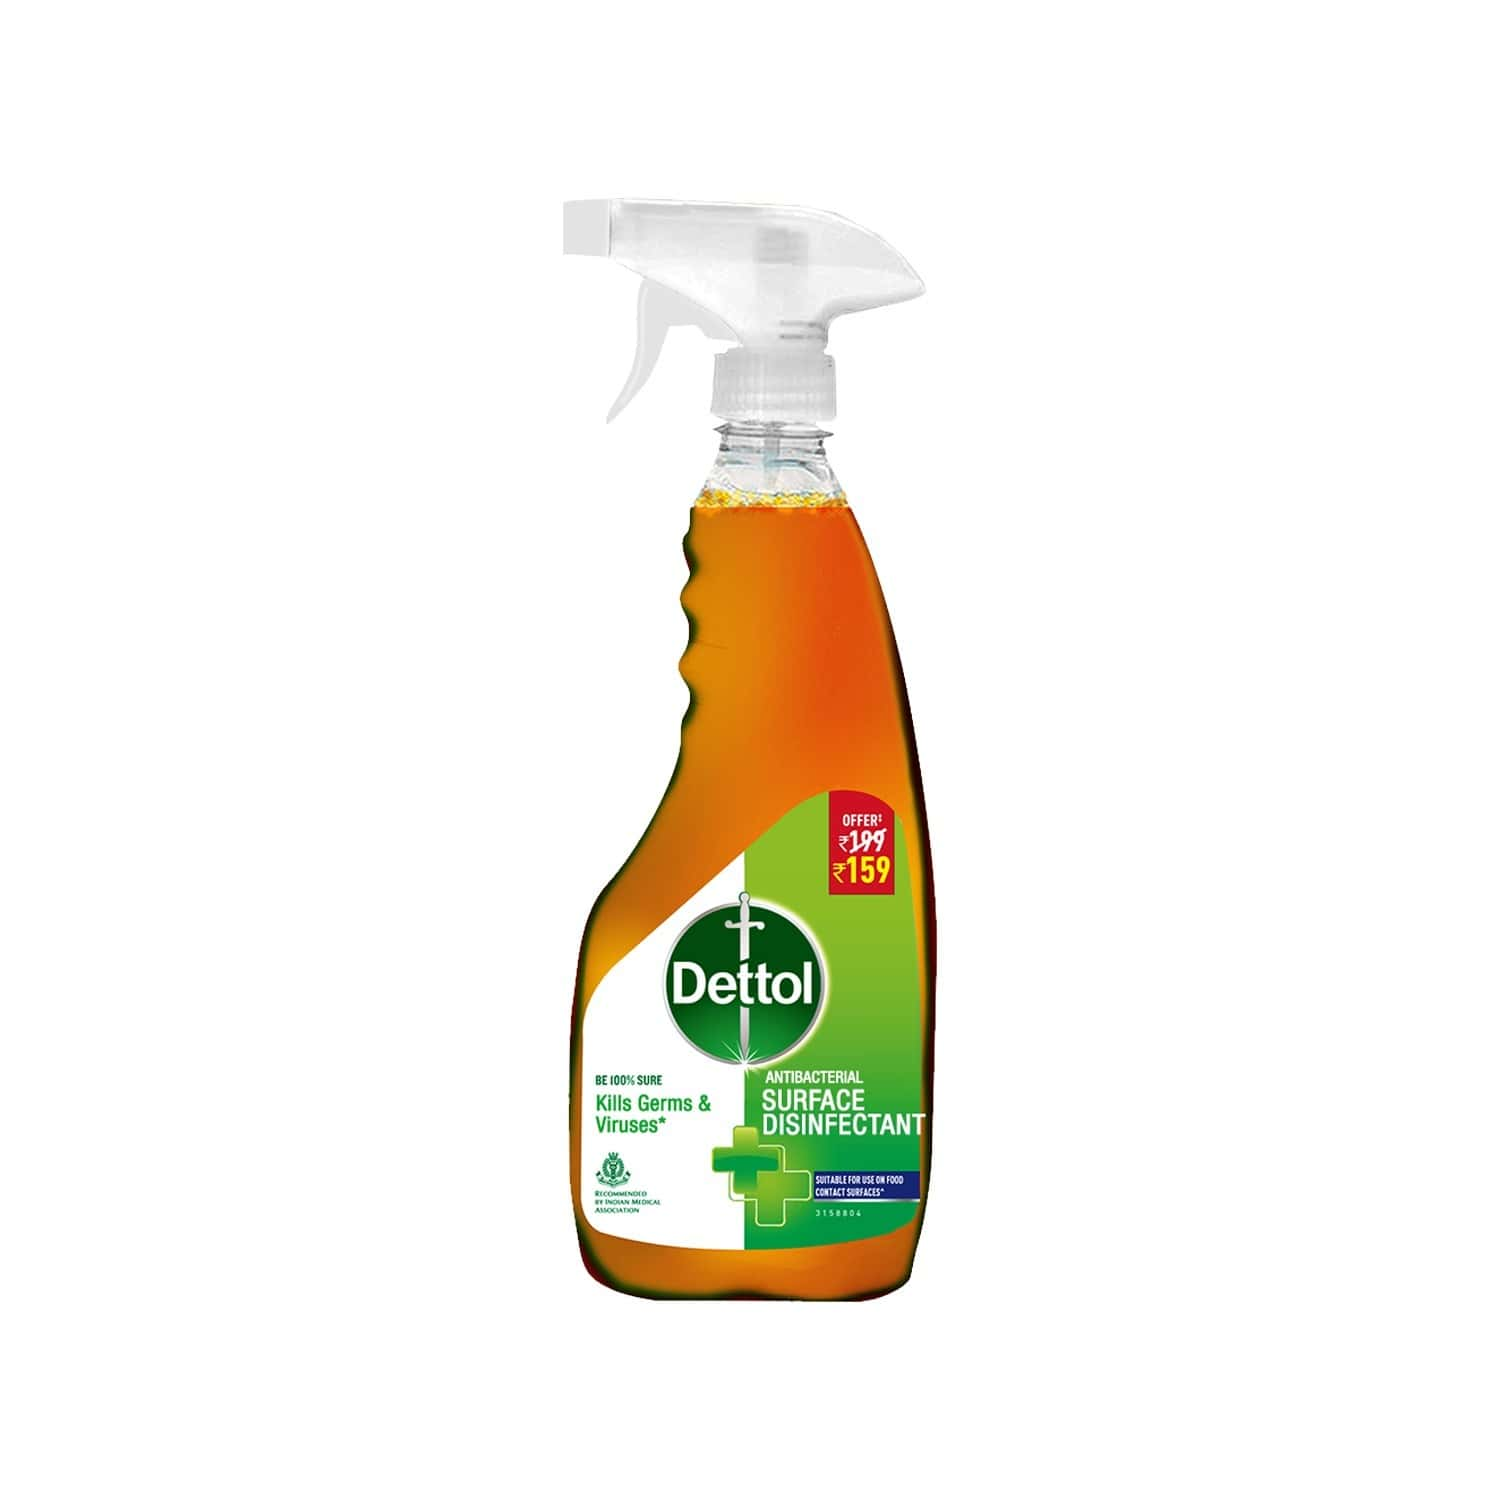 Dettol Antibacterial Surface Disinfectant Spray Sanitizer, Kills Germs & Viruses, Multi - Purpose Germ Protection Cleaner - 500ml